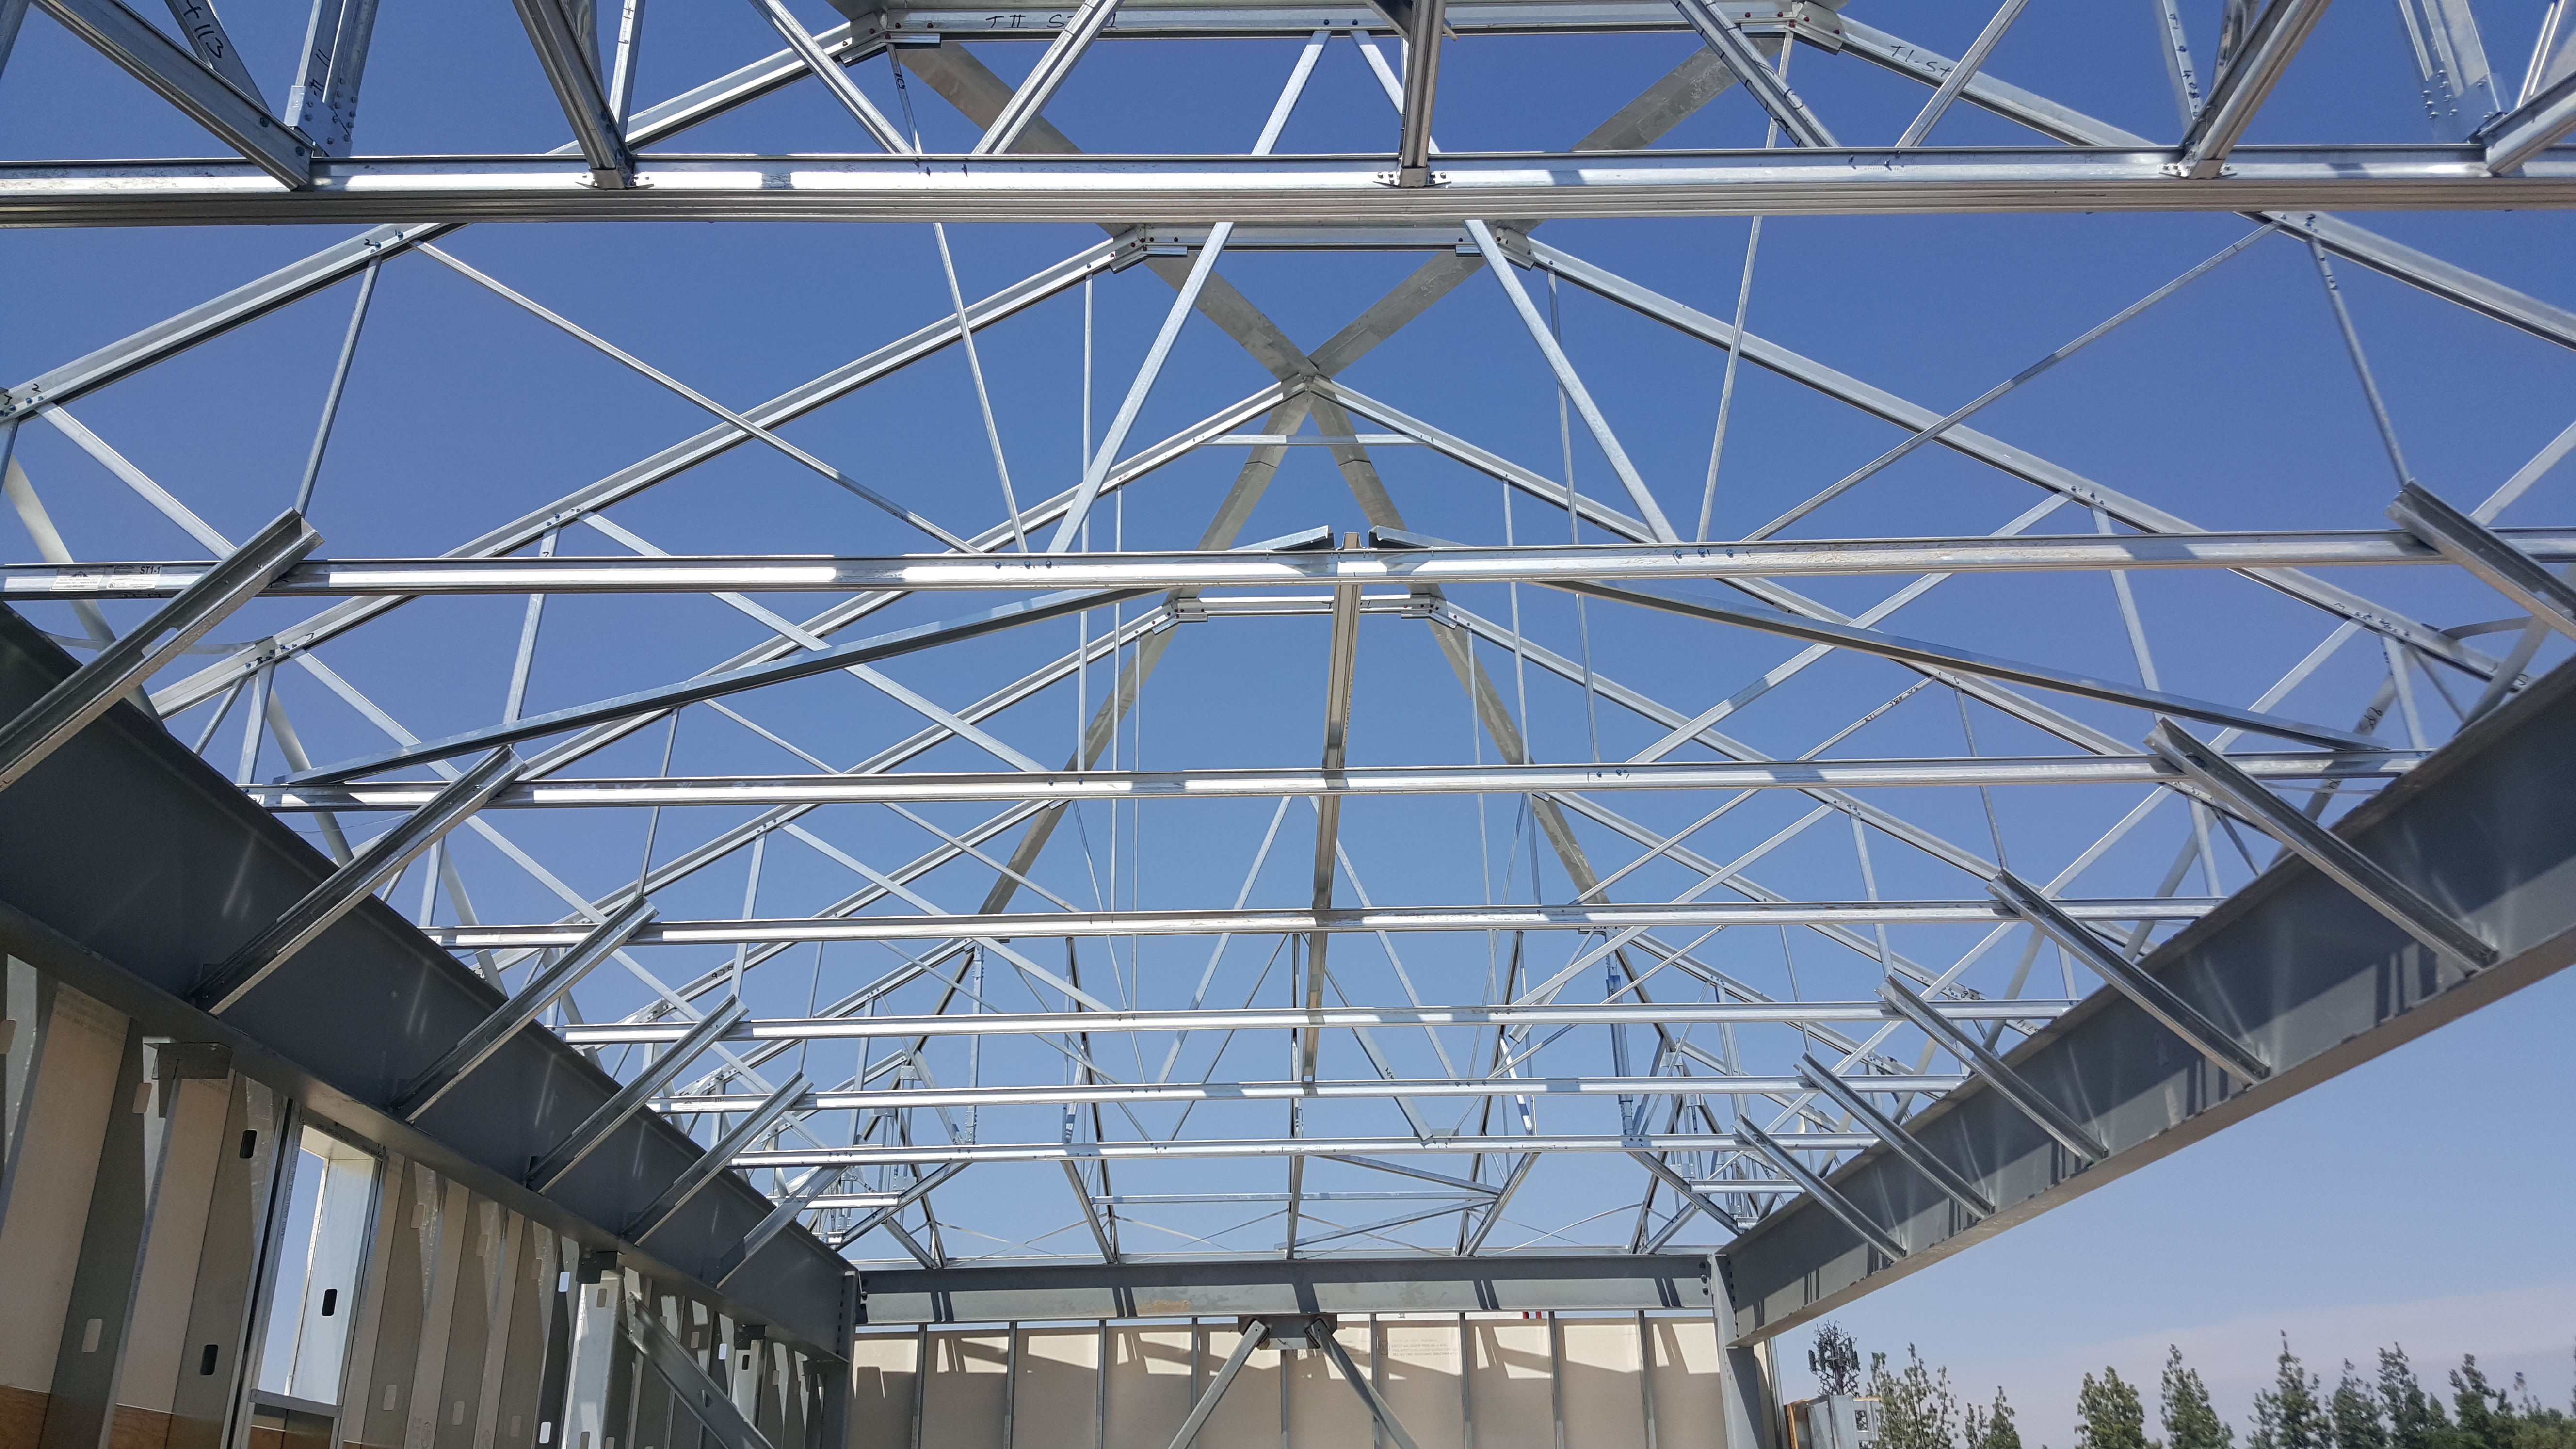 Walmart Metal Trusses 6 West Coast Drywall Construction Inc